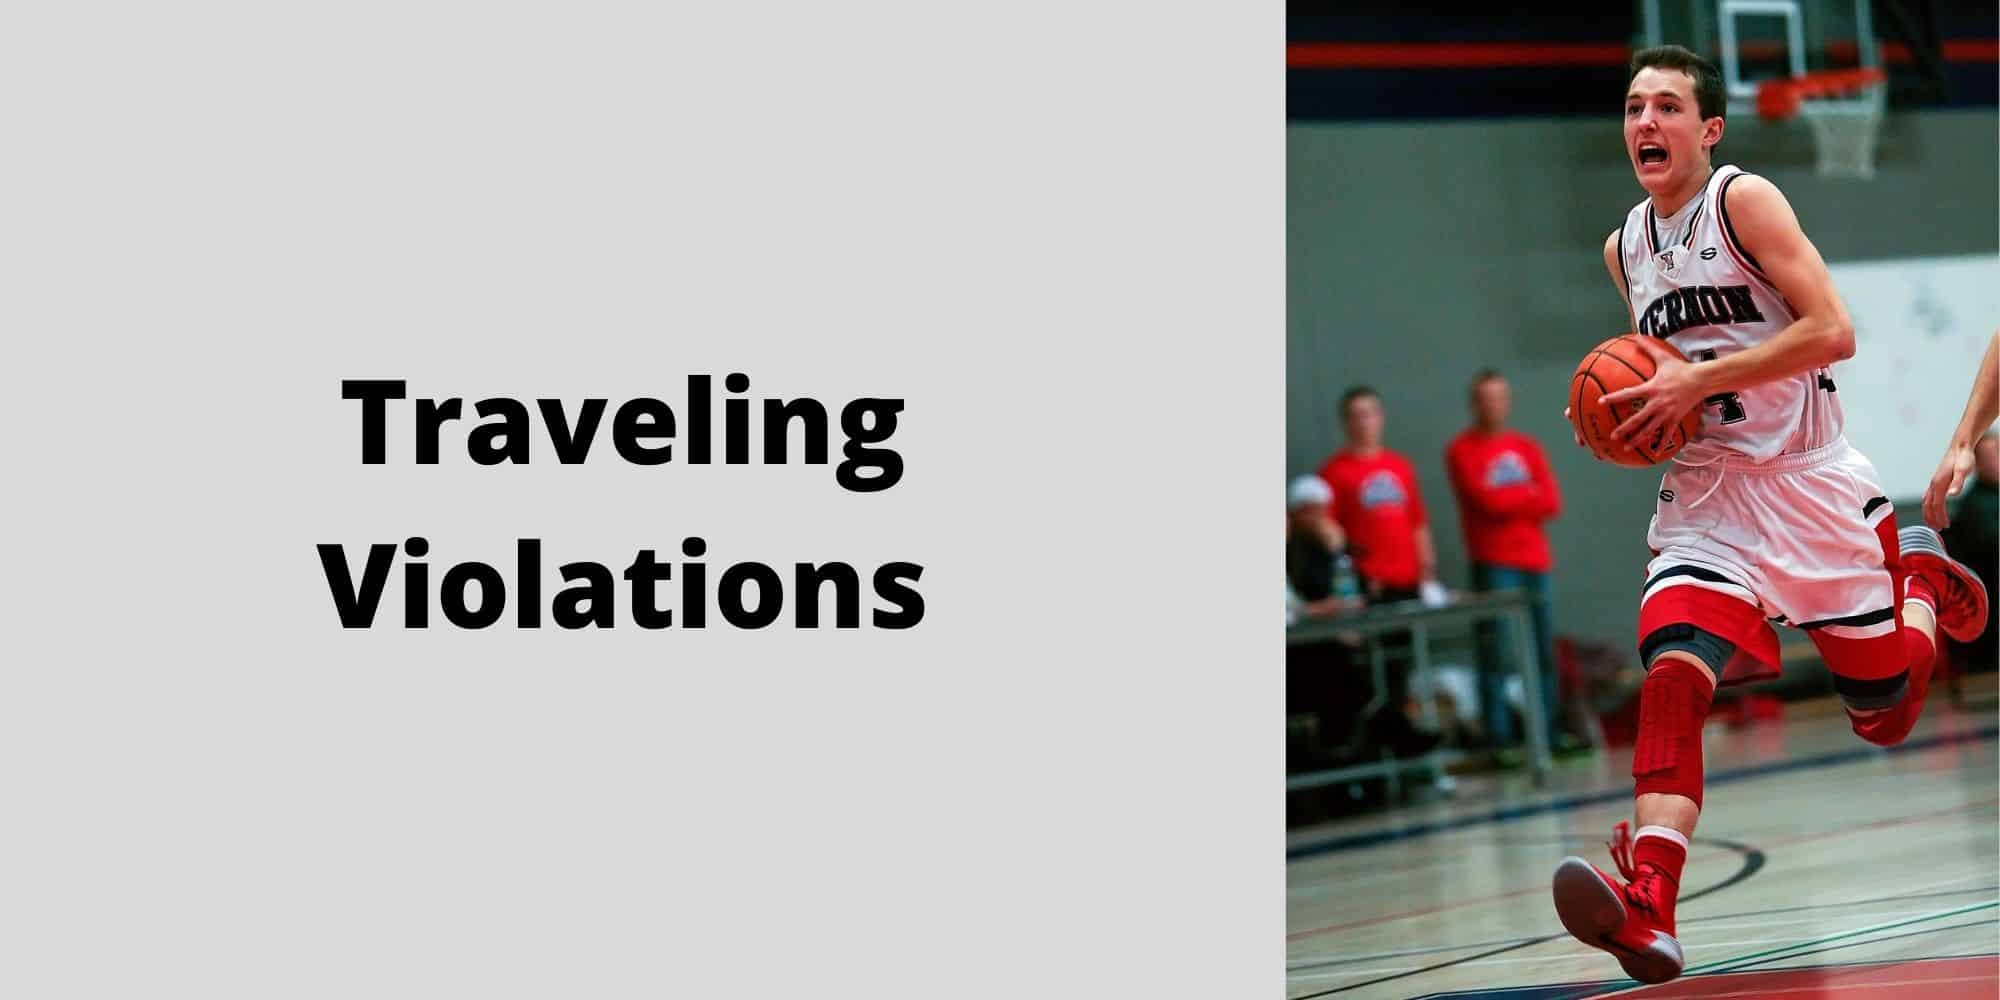 The traveling violation explained cover image